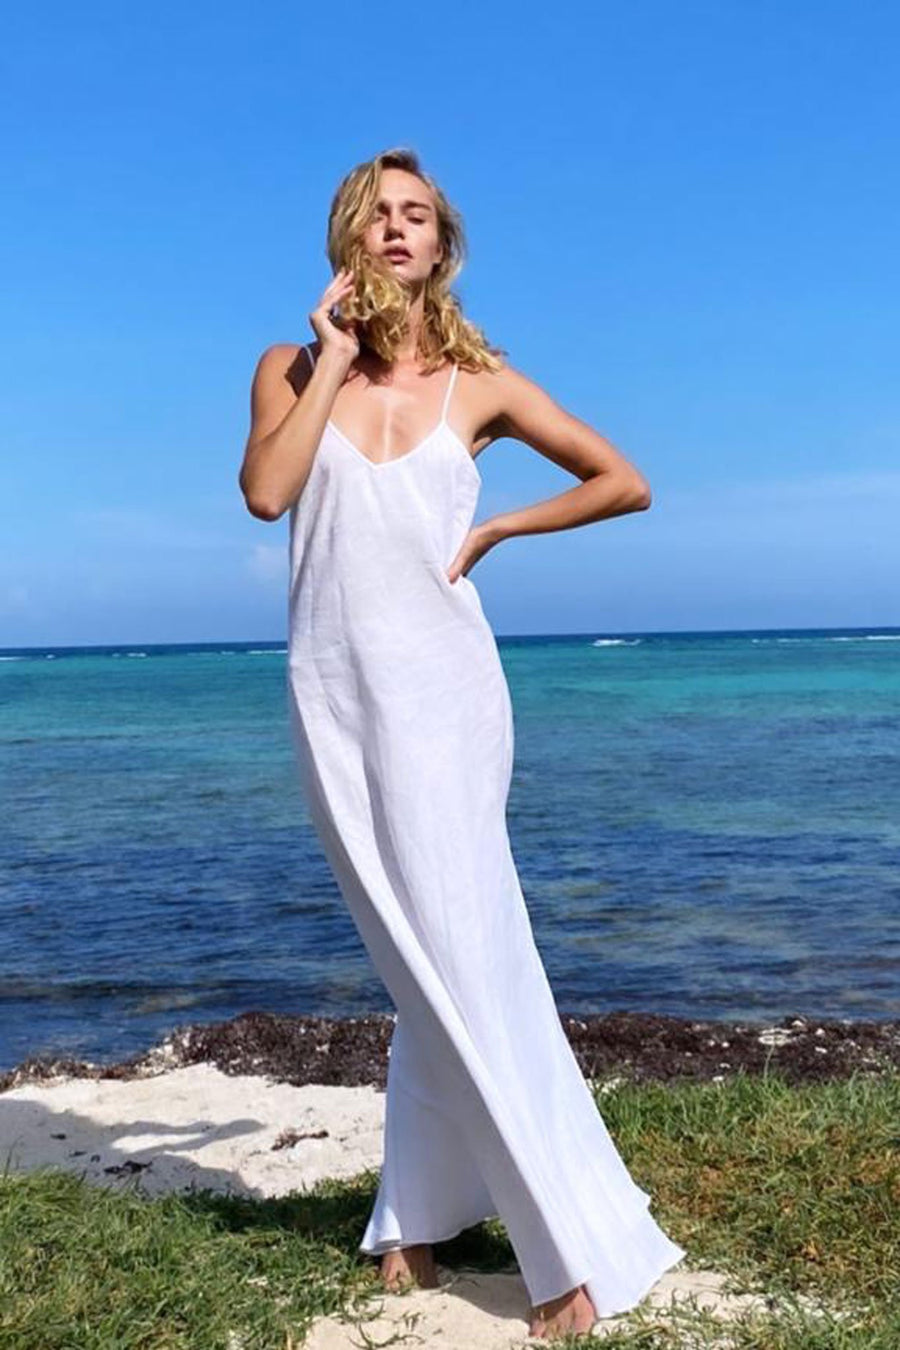 This is a photo of a woman wearing a white linen slip dress with v neck front and side leg slit. She is standing on a beach overlooking the ocean.